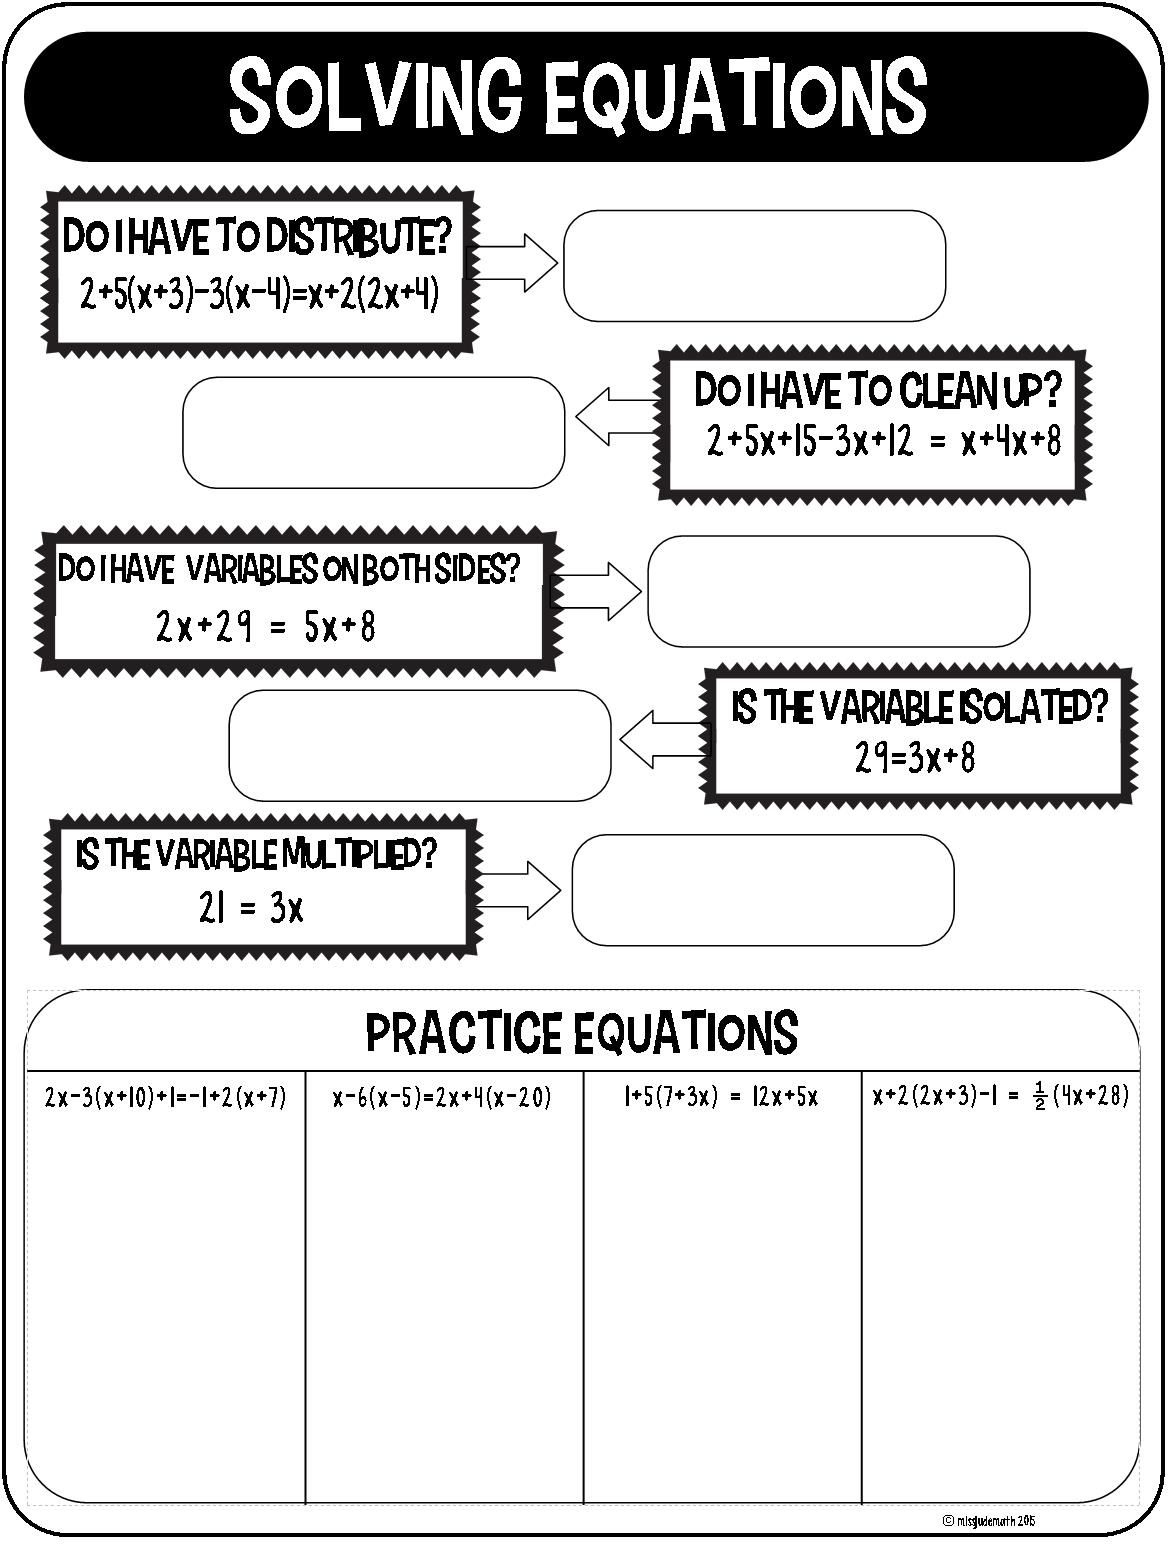 How To Solve An Equation Graphic Organizer For Interactive Notebooks Or Classroom Poster From